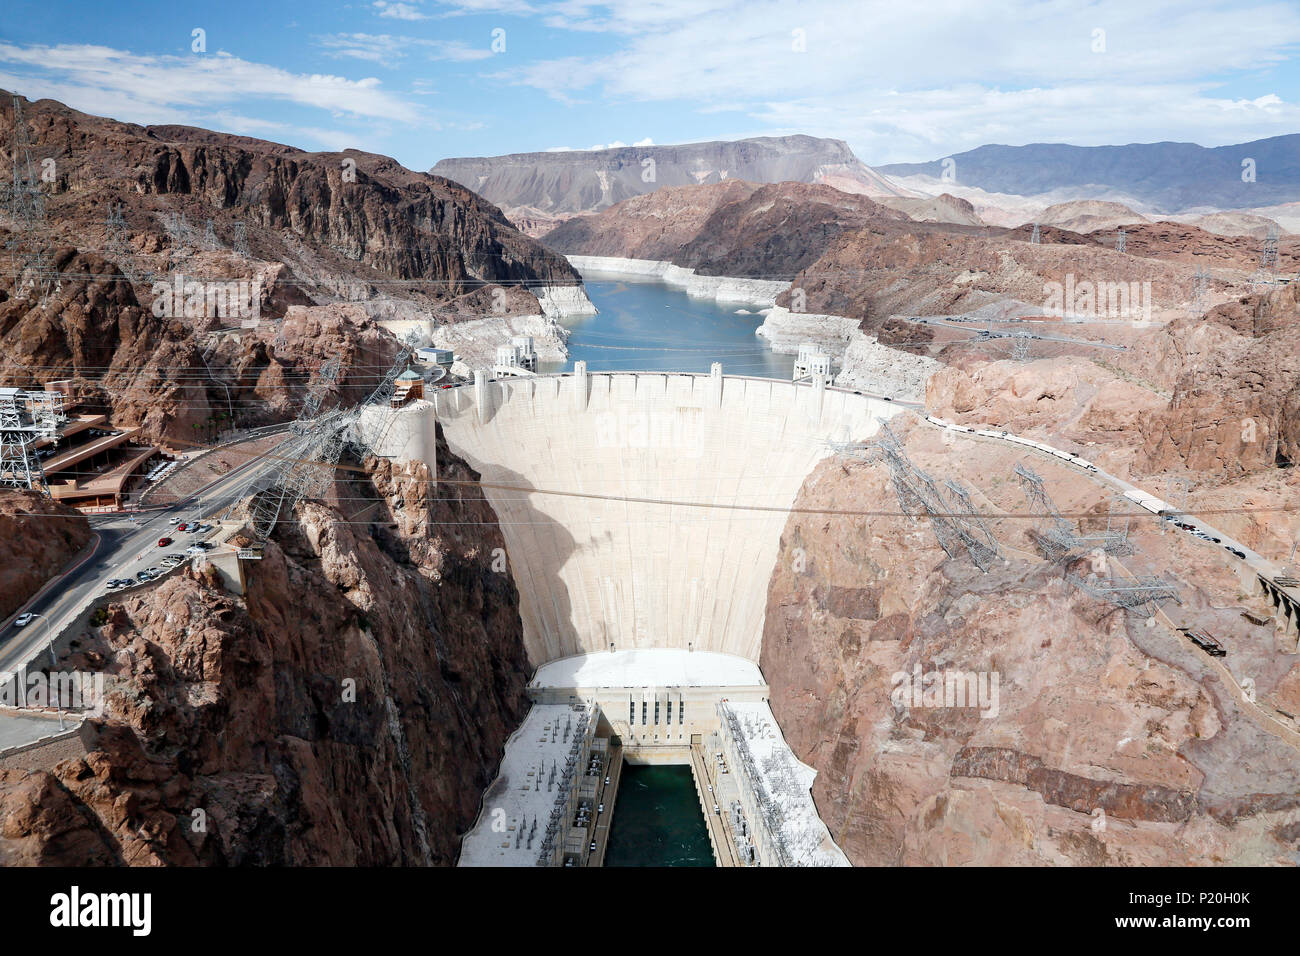 USA. Arizona. Nevada. Colorado River. Lake Mead. Hoover Dam Dam. - Stock Image